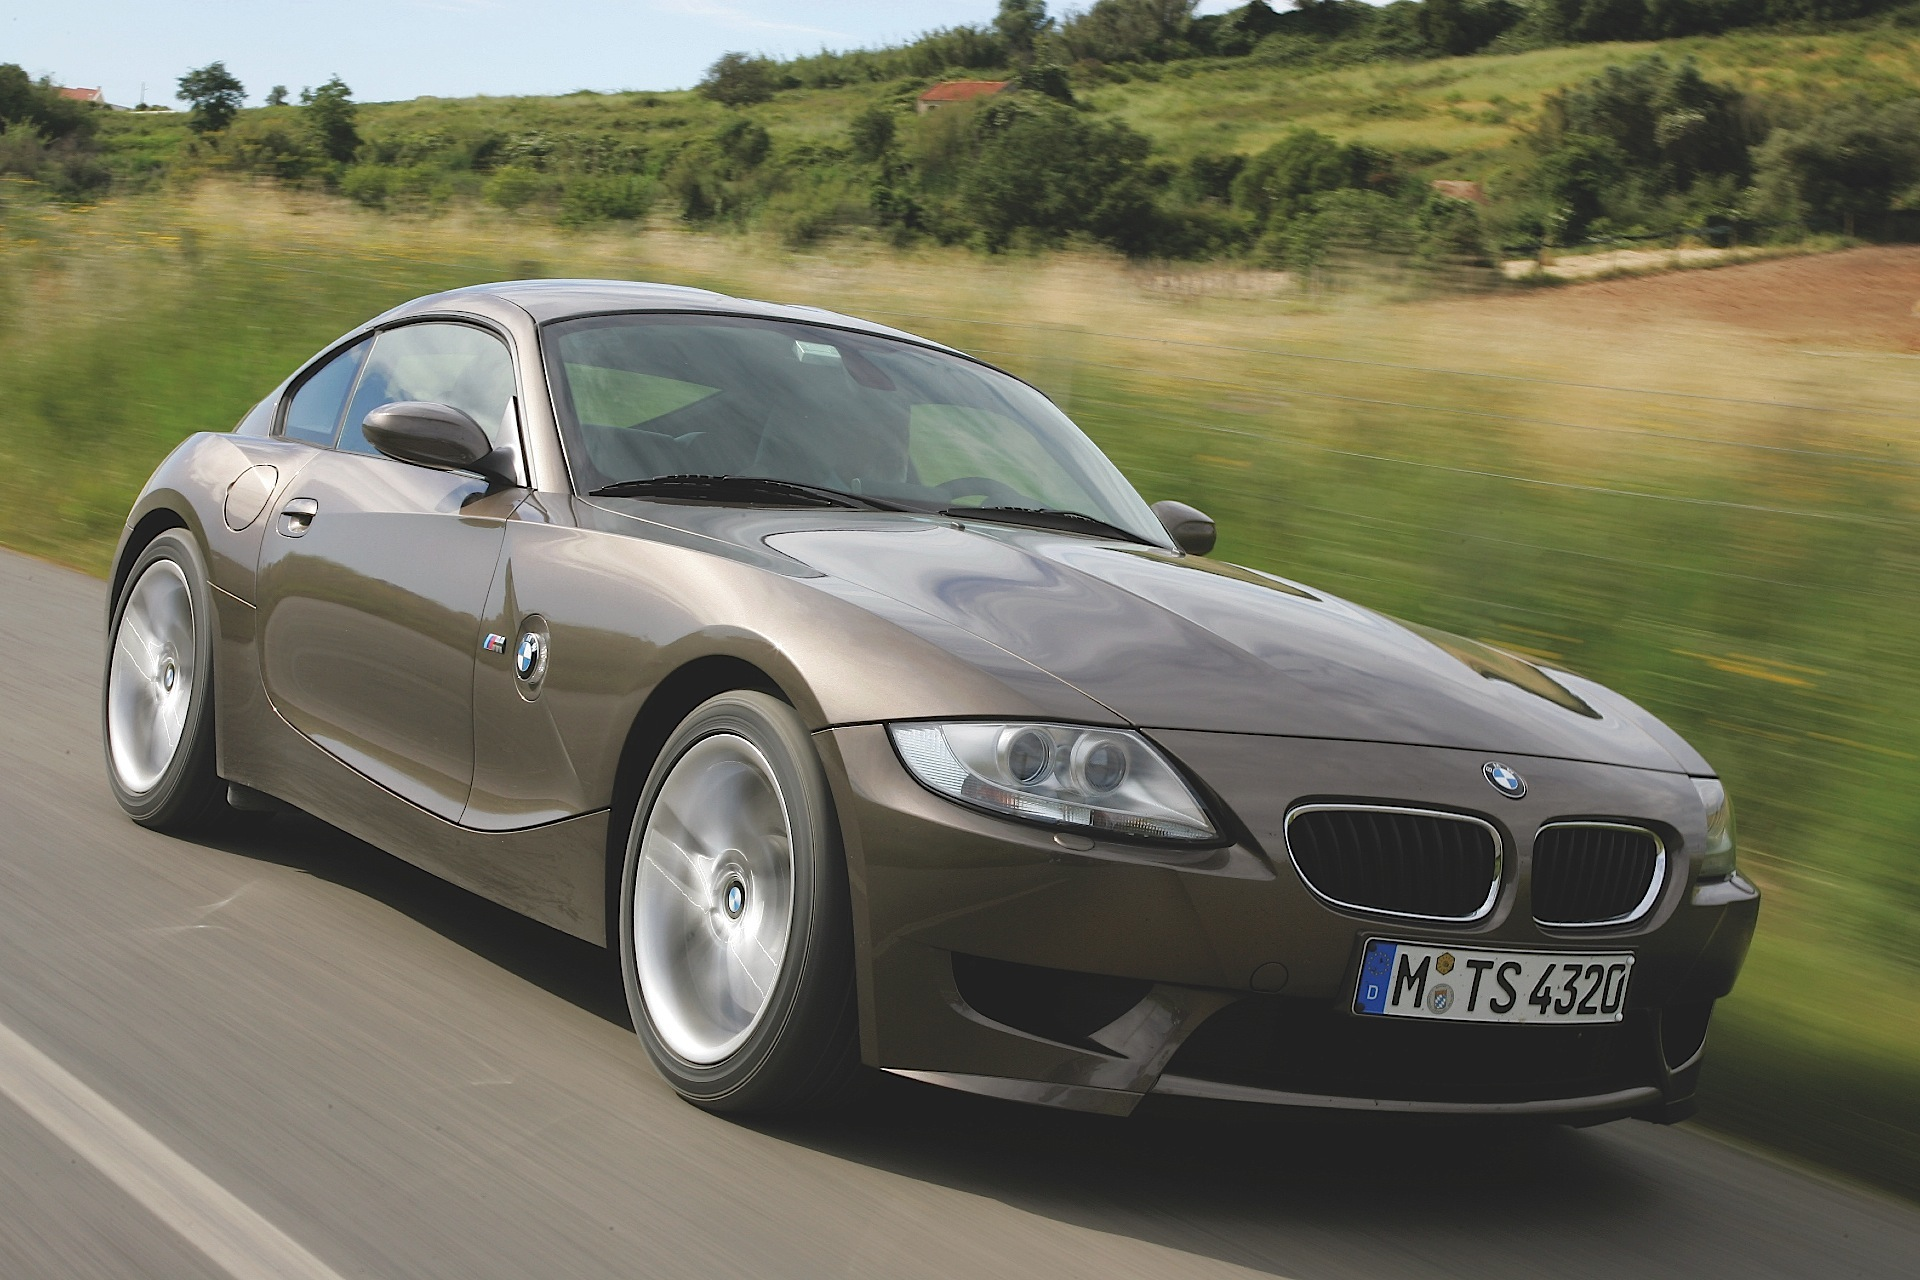 The bmw x5 has been around since the turn of the century, evolving into an suv that balances power, refinement, and luxury with great road manners. BMW Z4 M Coupe (E86) specs & photos - 2006, 2007, 2008